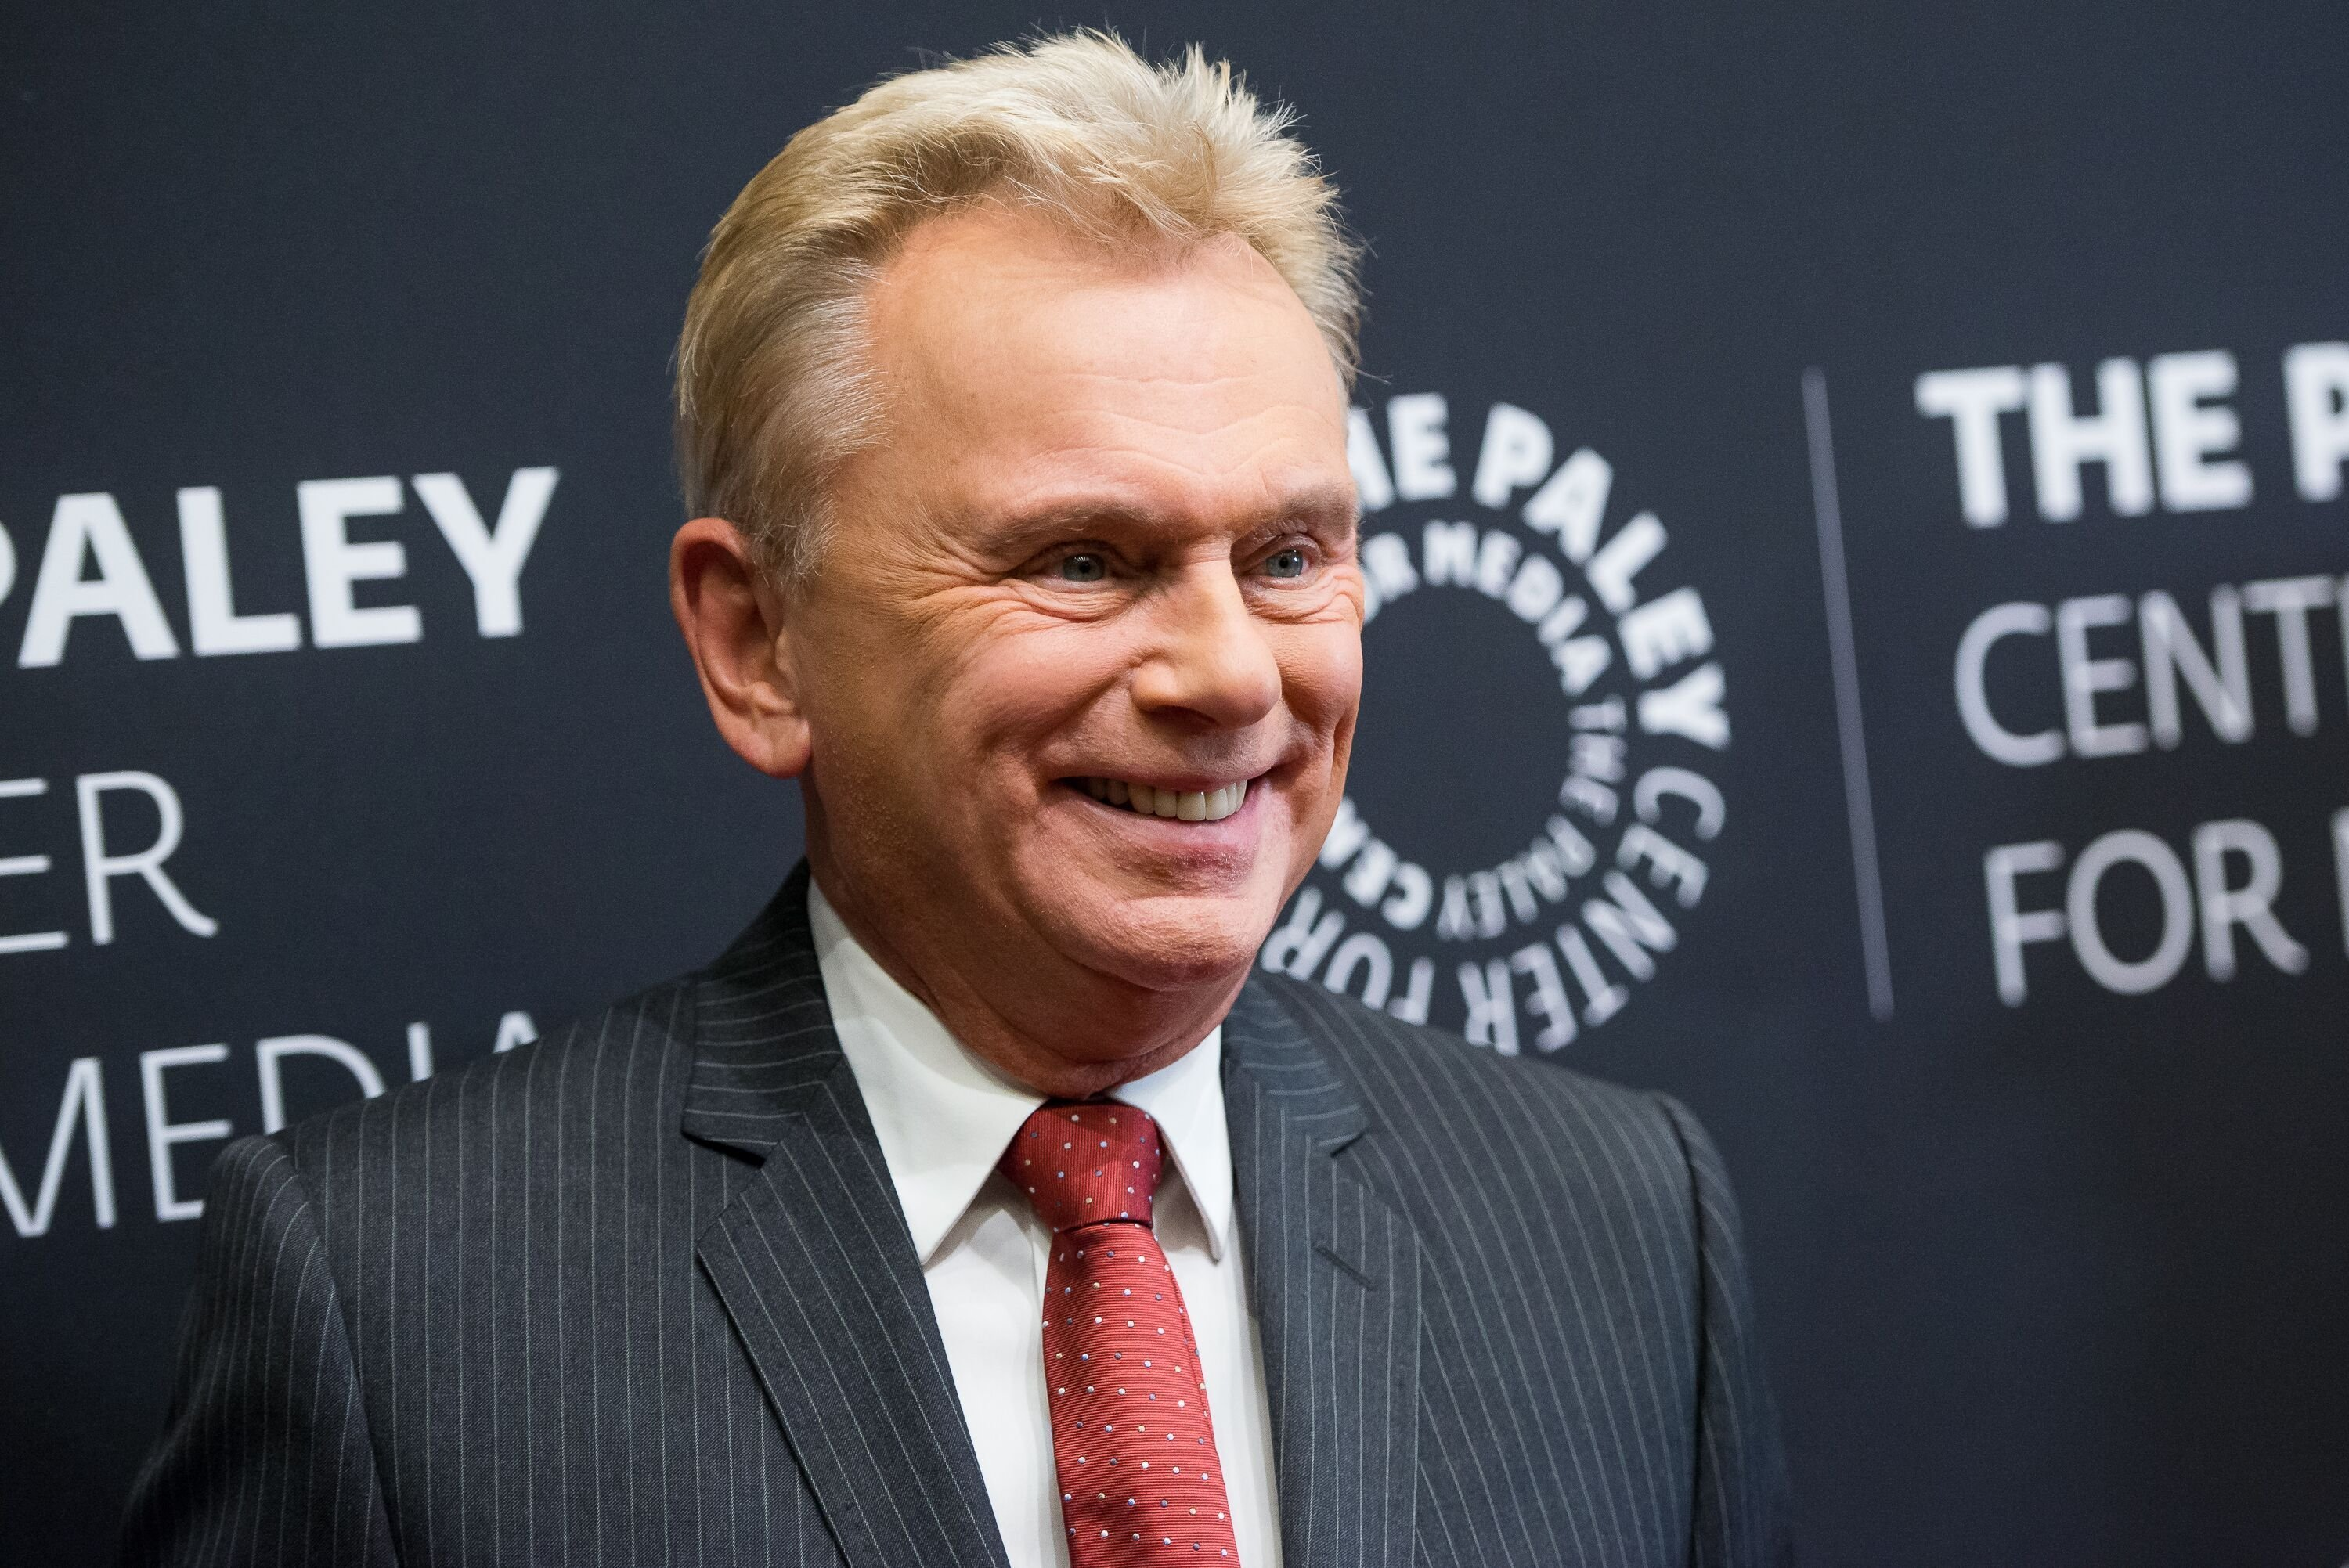 Pat Sajak at The Paley Center For Media Presents Wheel Of Fortune 35 Years As America's Game on November 15, 2017, in New York City. | Photo: Getty Images